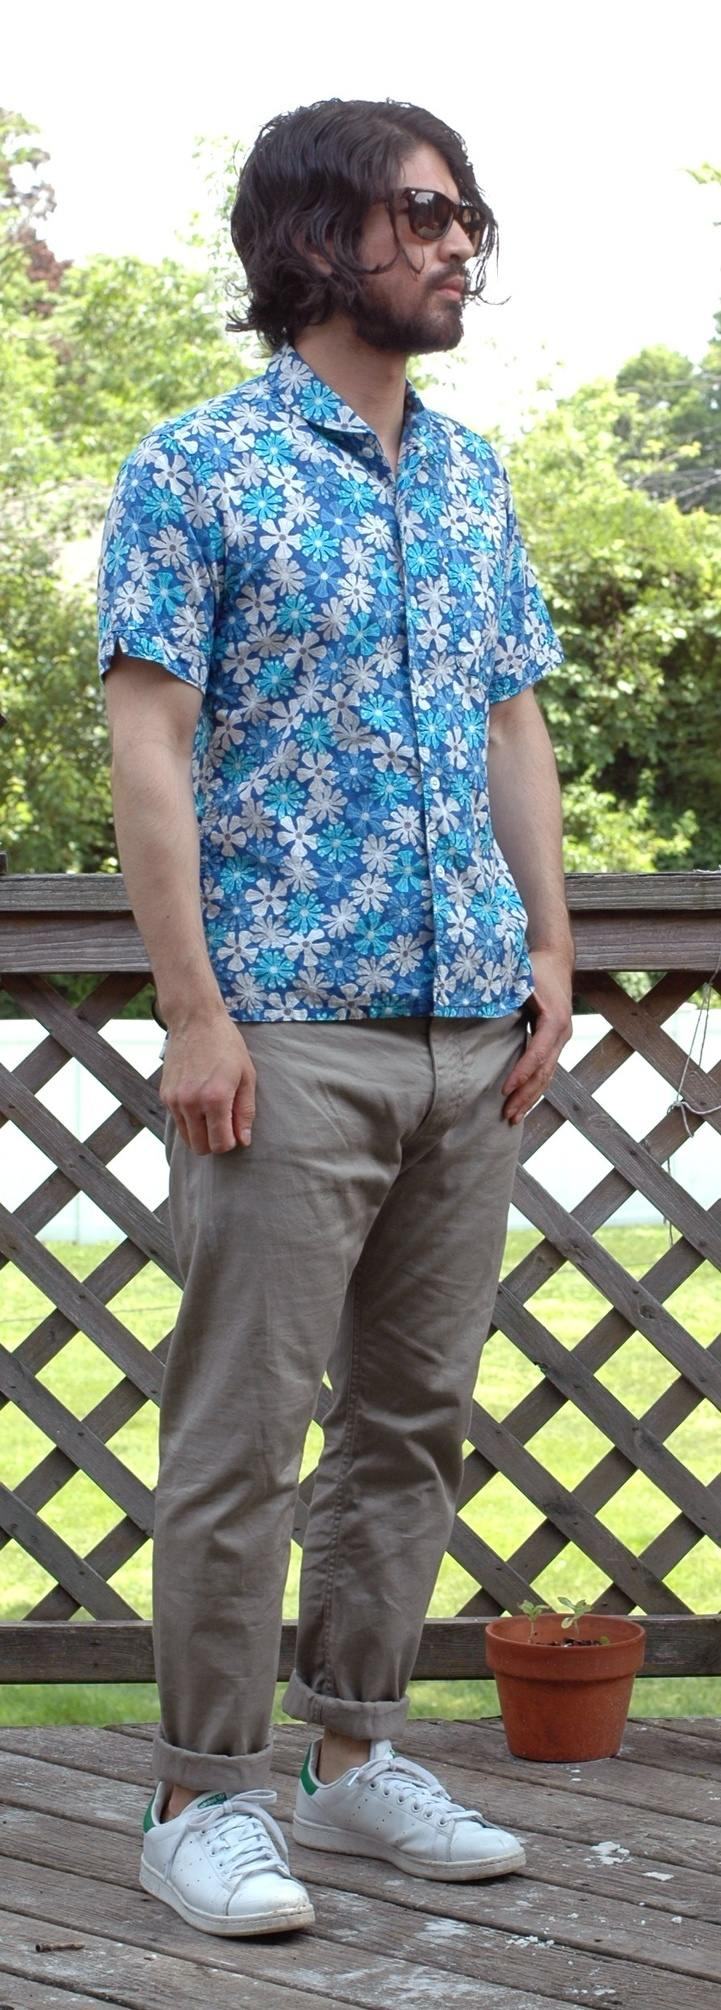 man wearing khaki chinos and floral shirt